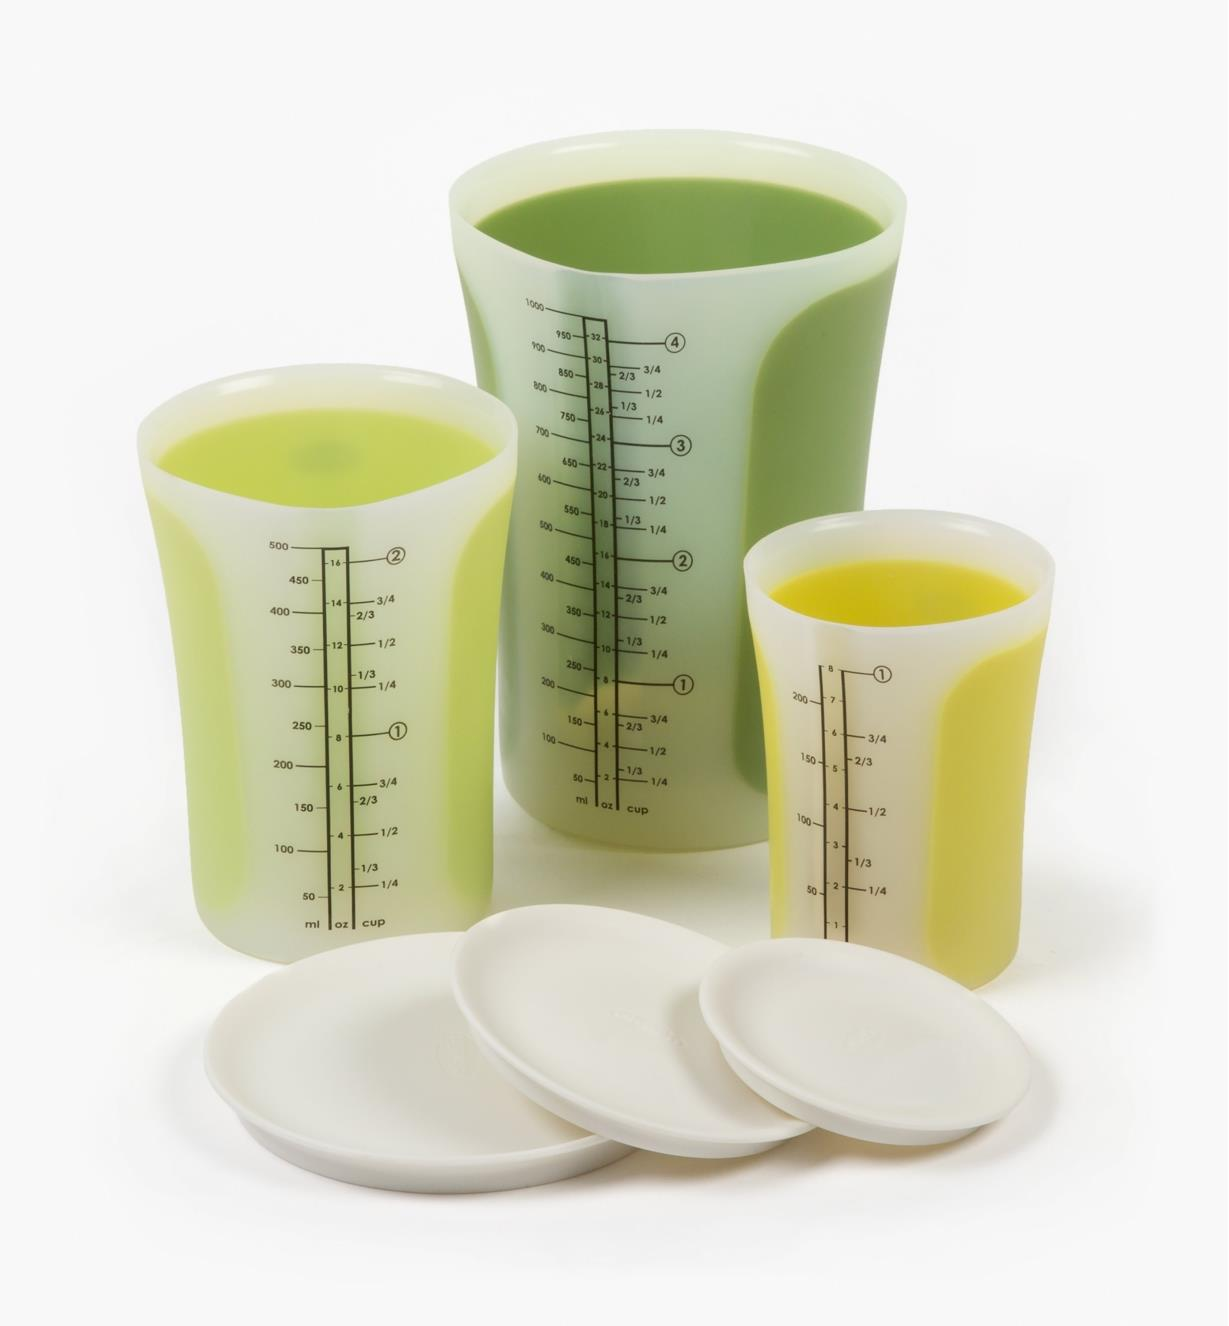 EV158 - Pinch & Pour Measuring Beakers, set of 3